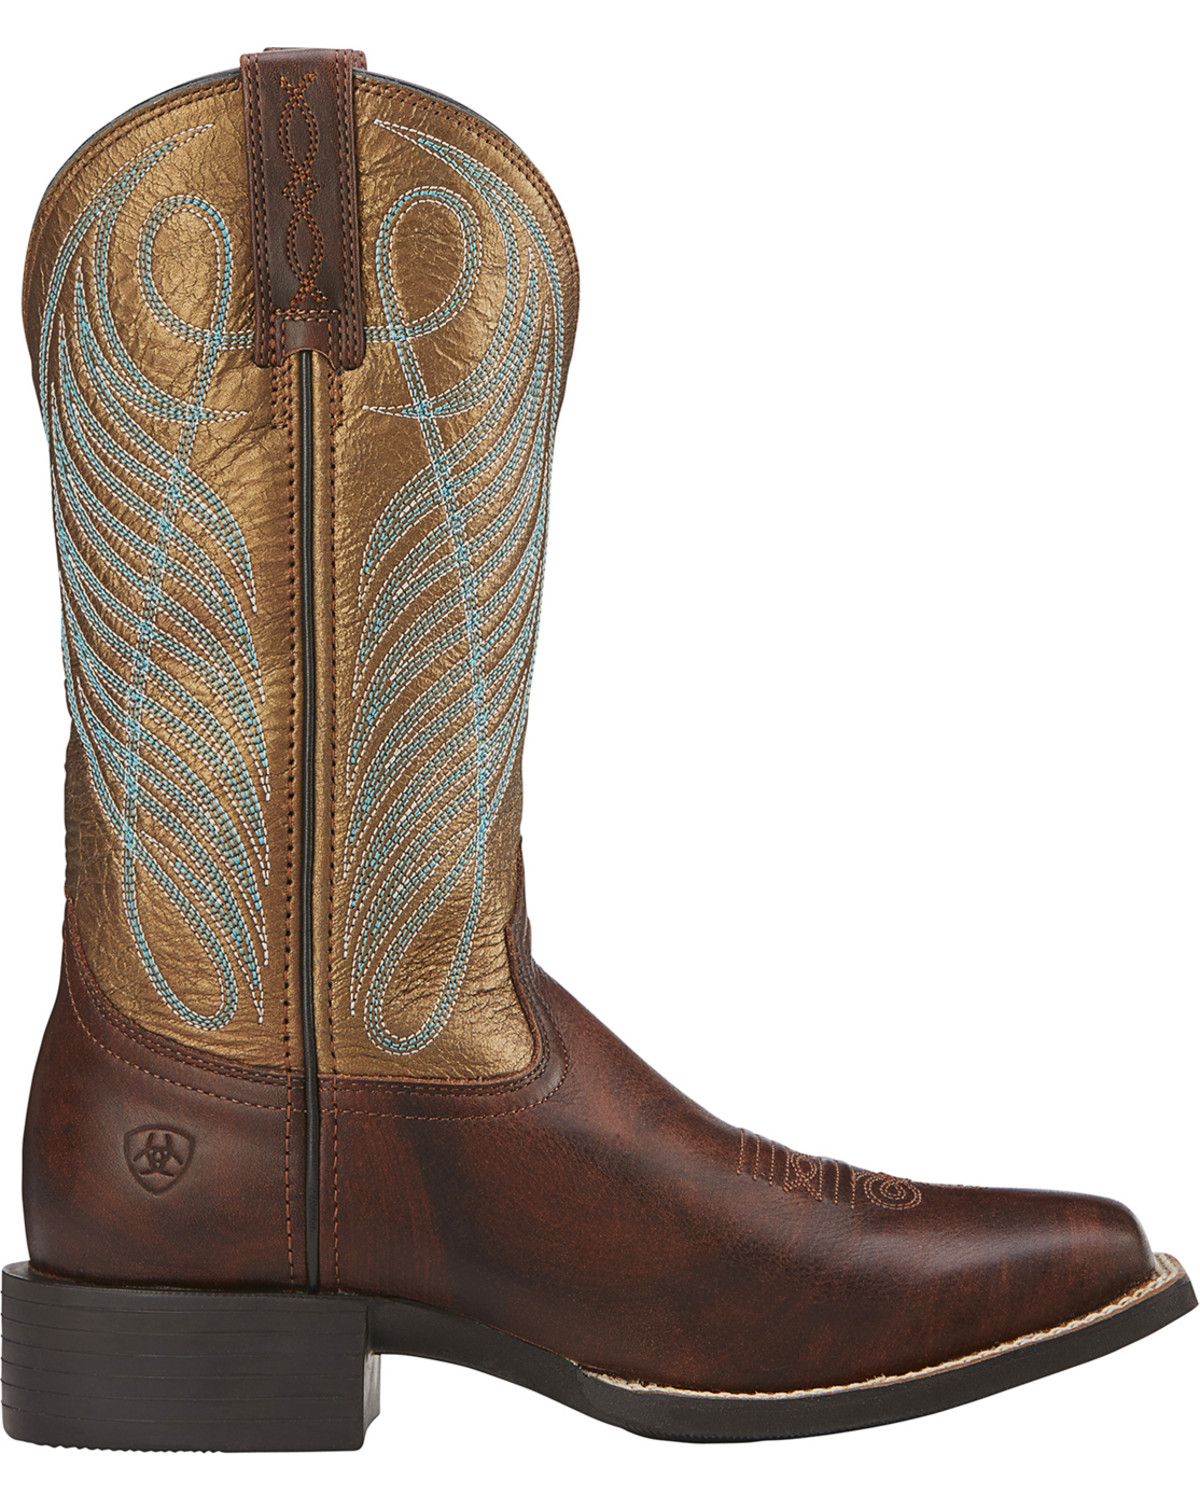 ab73a525a41 Ariat Women s Round Up Cowgirl Boots -Square Toe